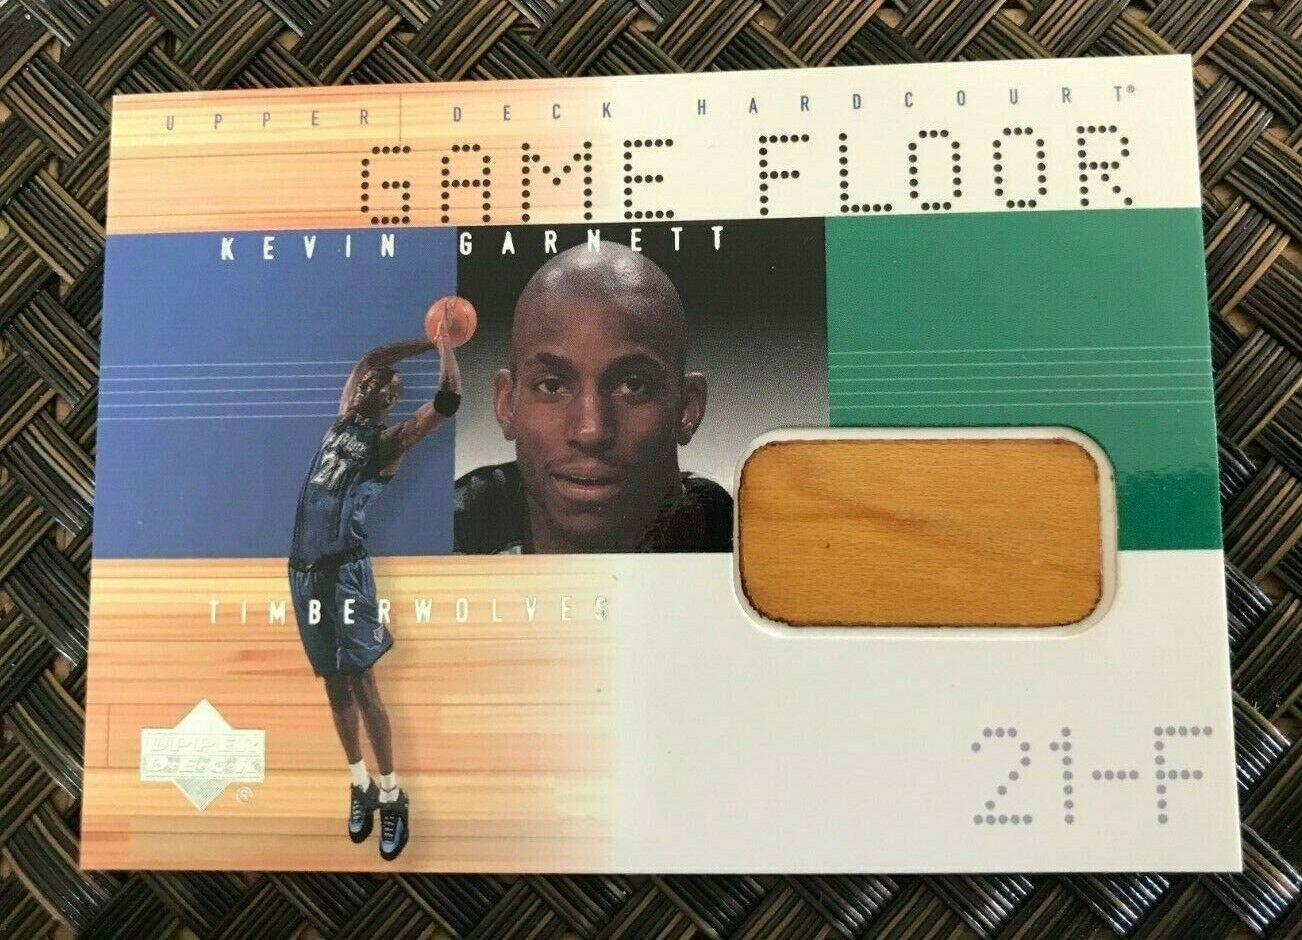 2000 Upper Deck In a popularity Hardcourt Kevin Garnett Floor Court Ca Game Used 70% OFF Outlet